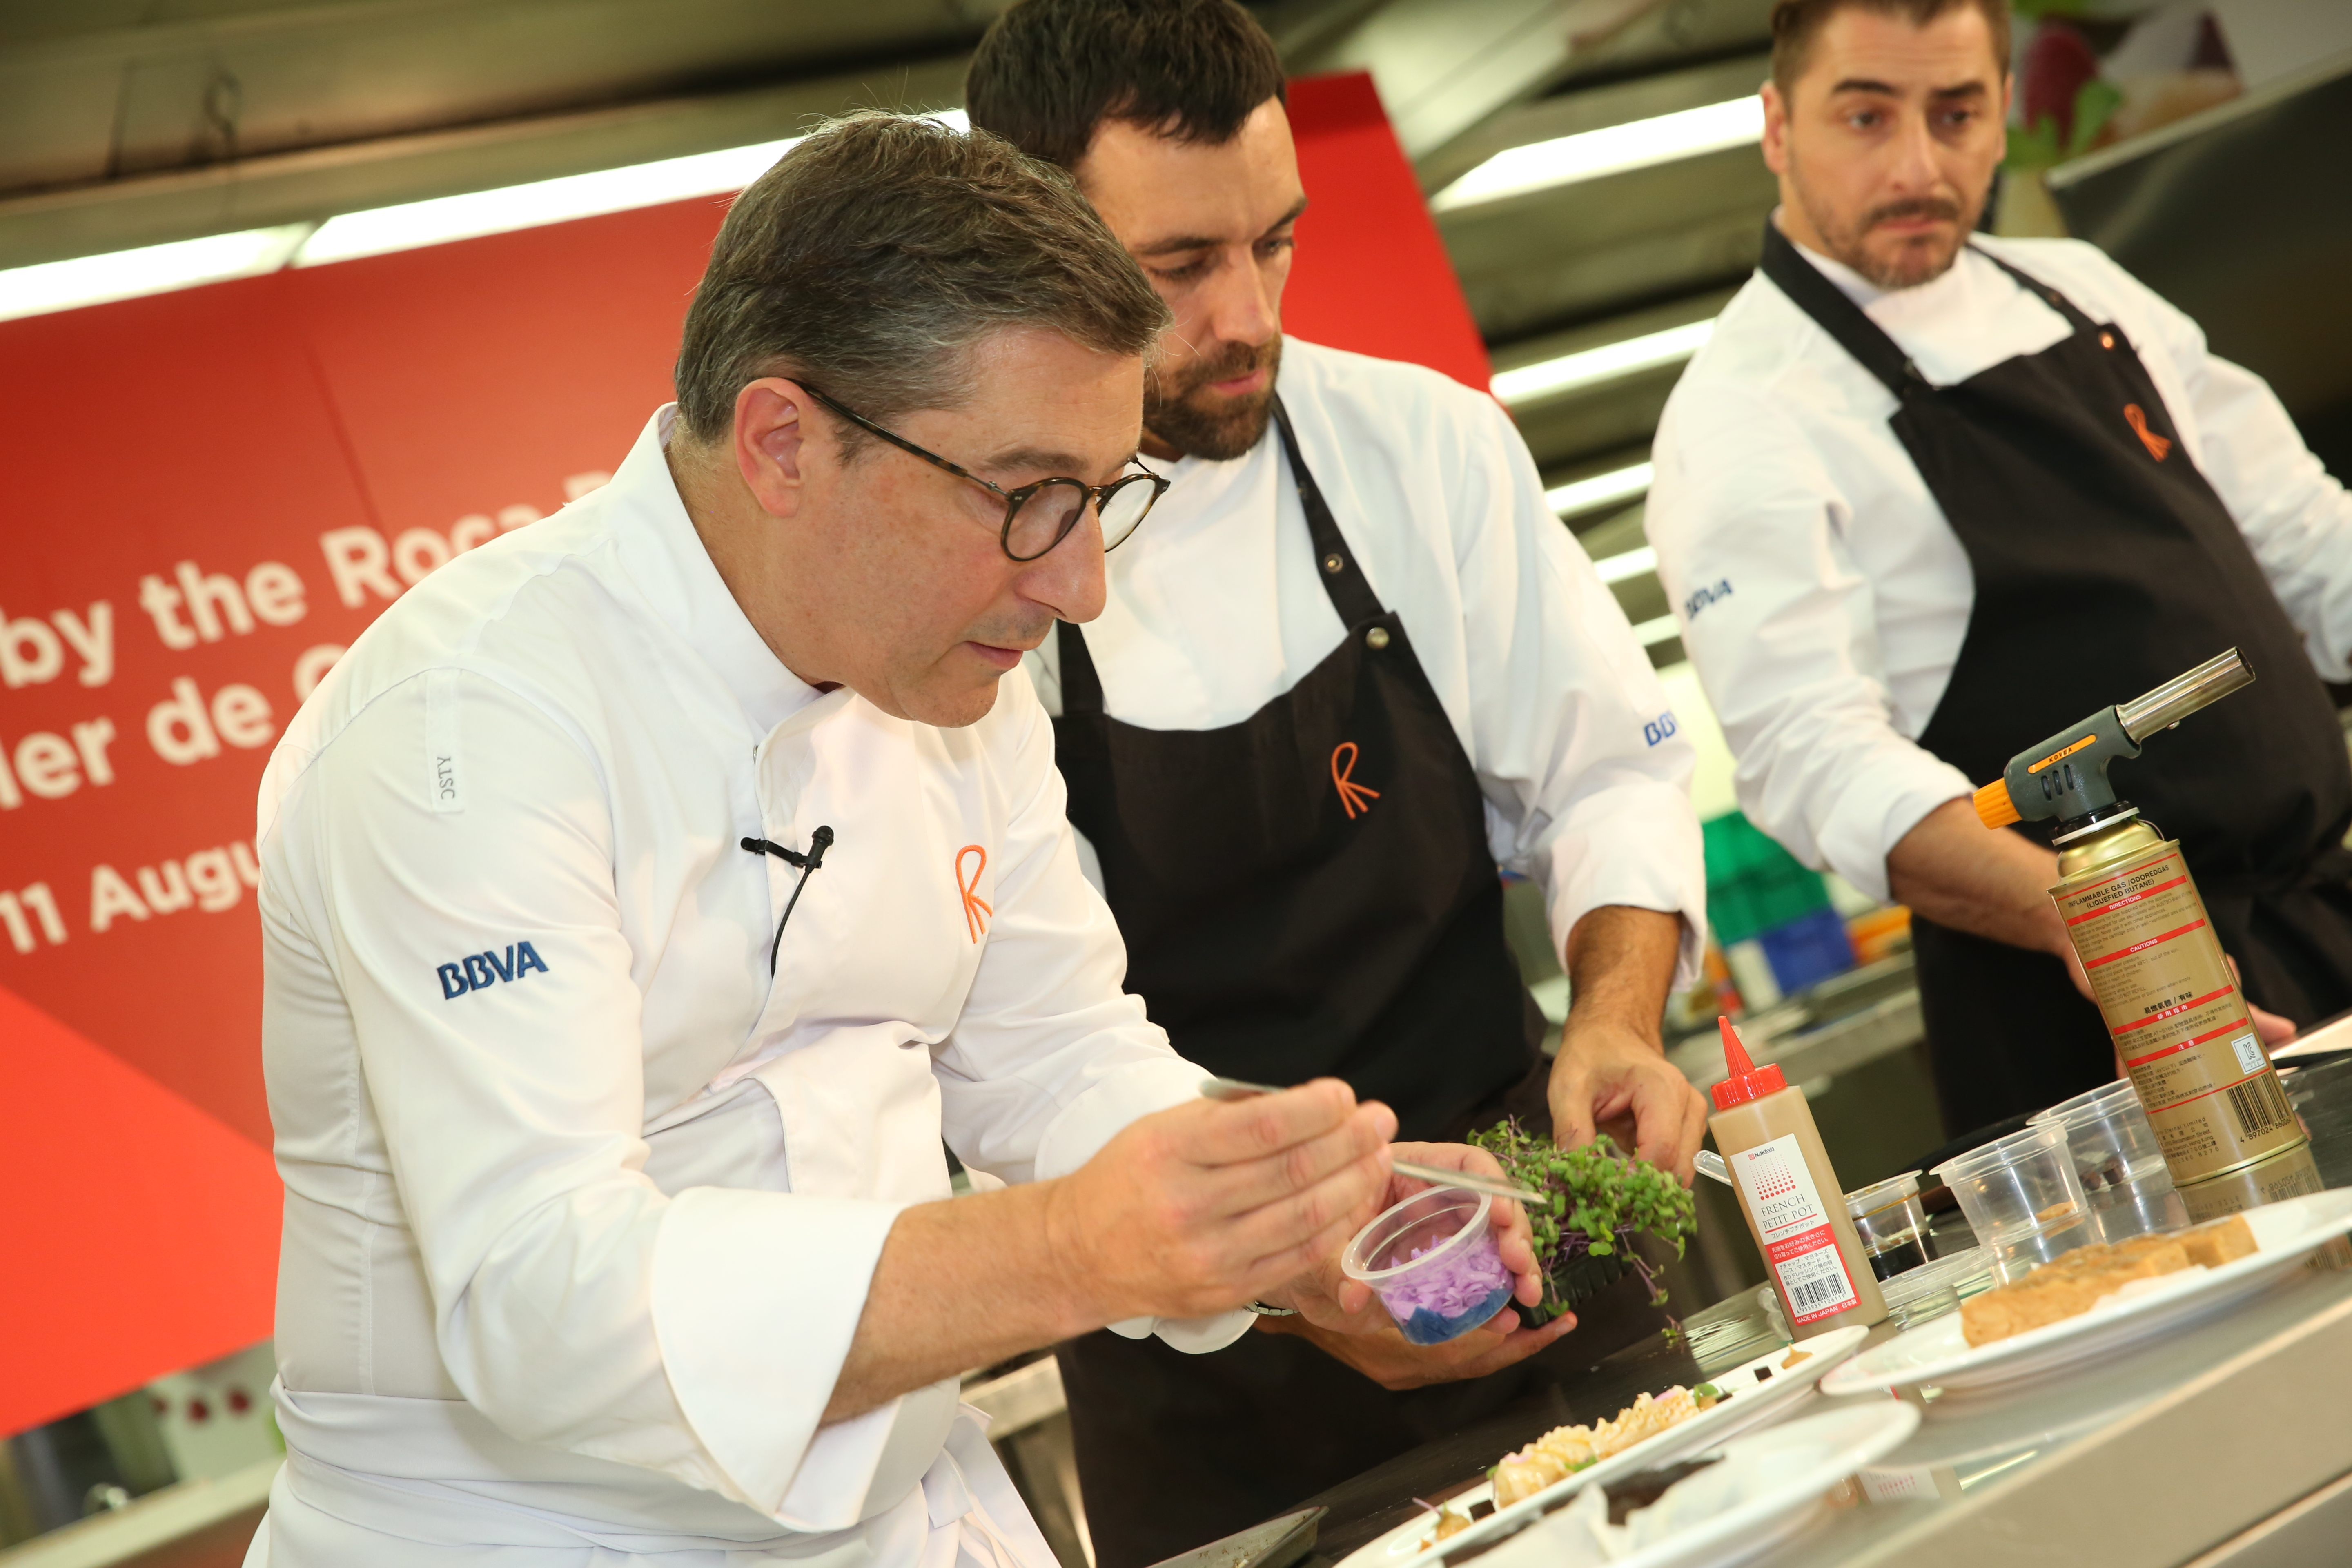 Master Class by the Roca Brothers from the World's Best Restaurant in 2015